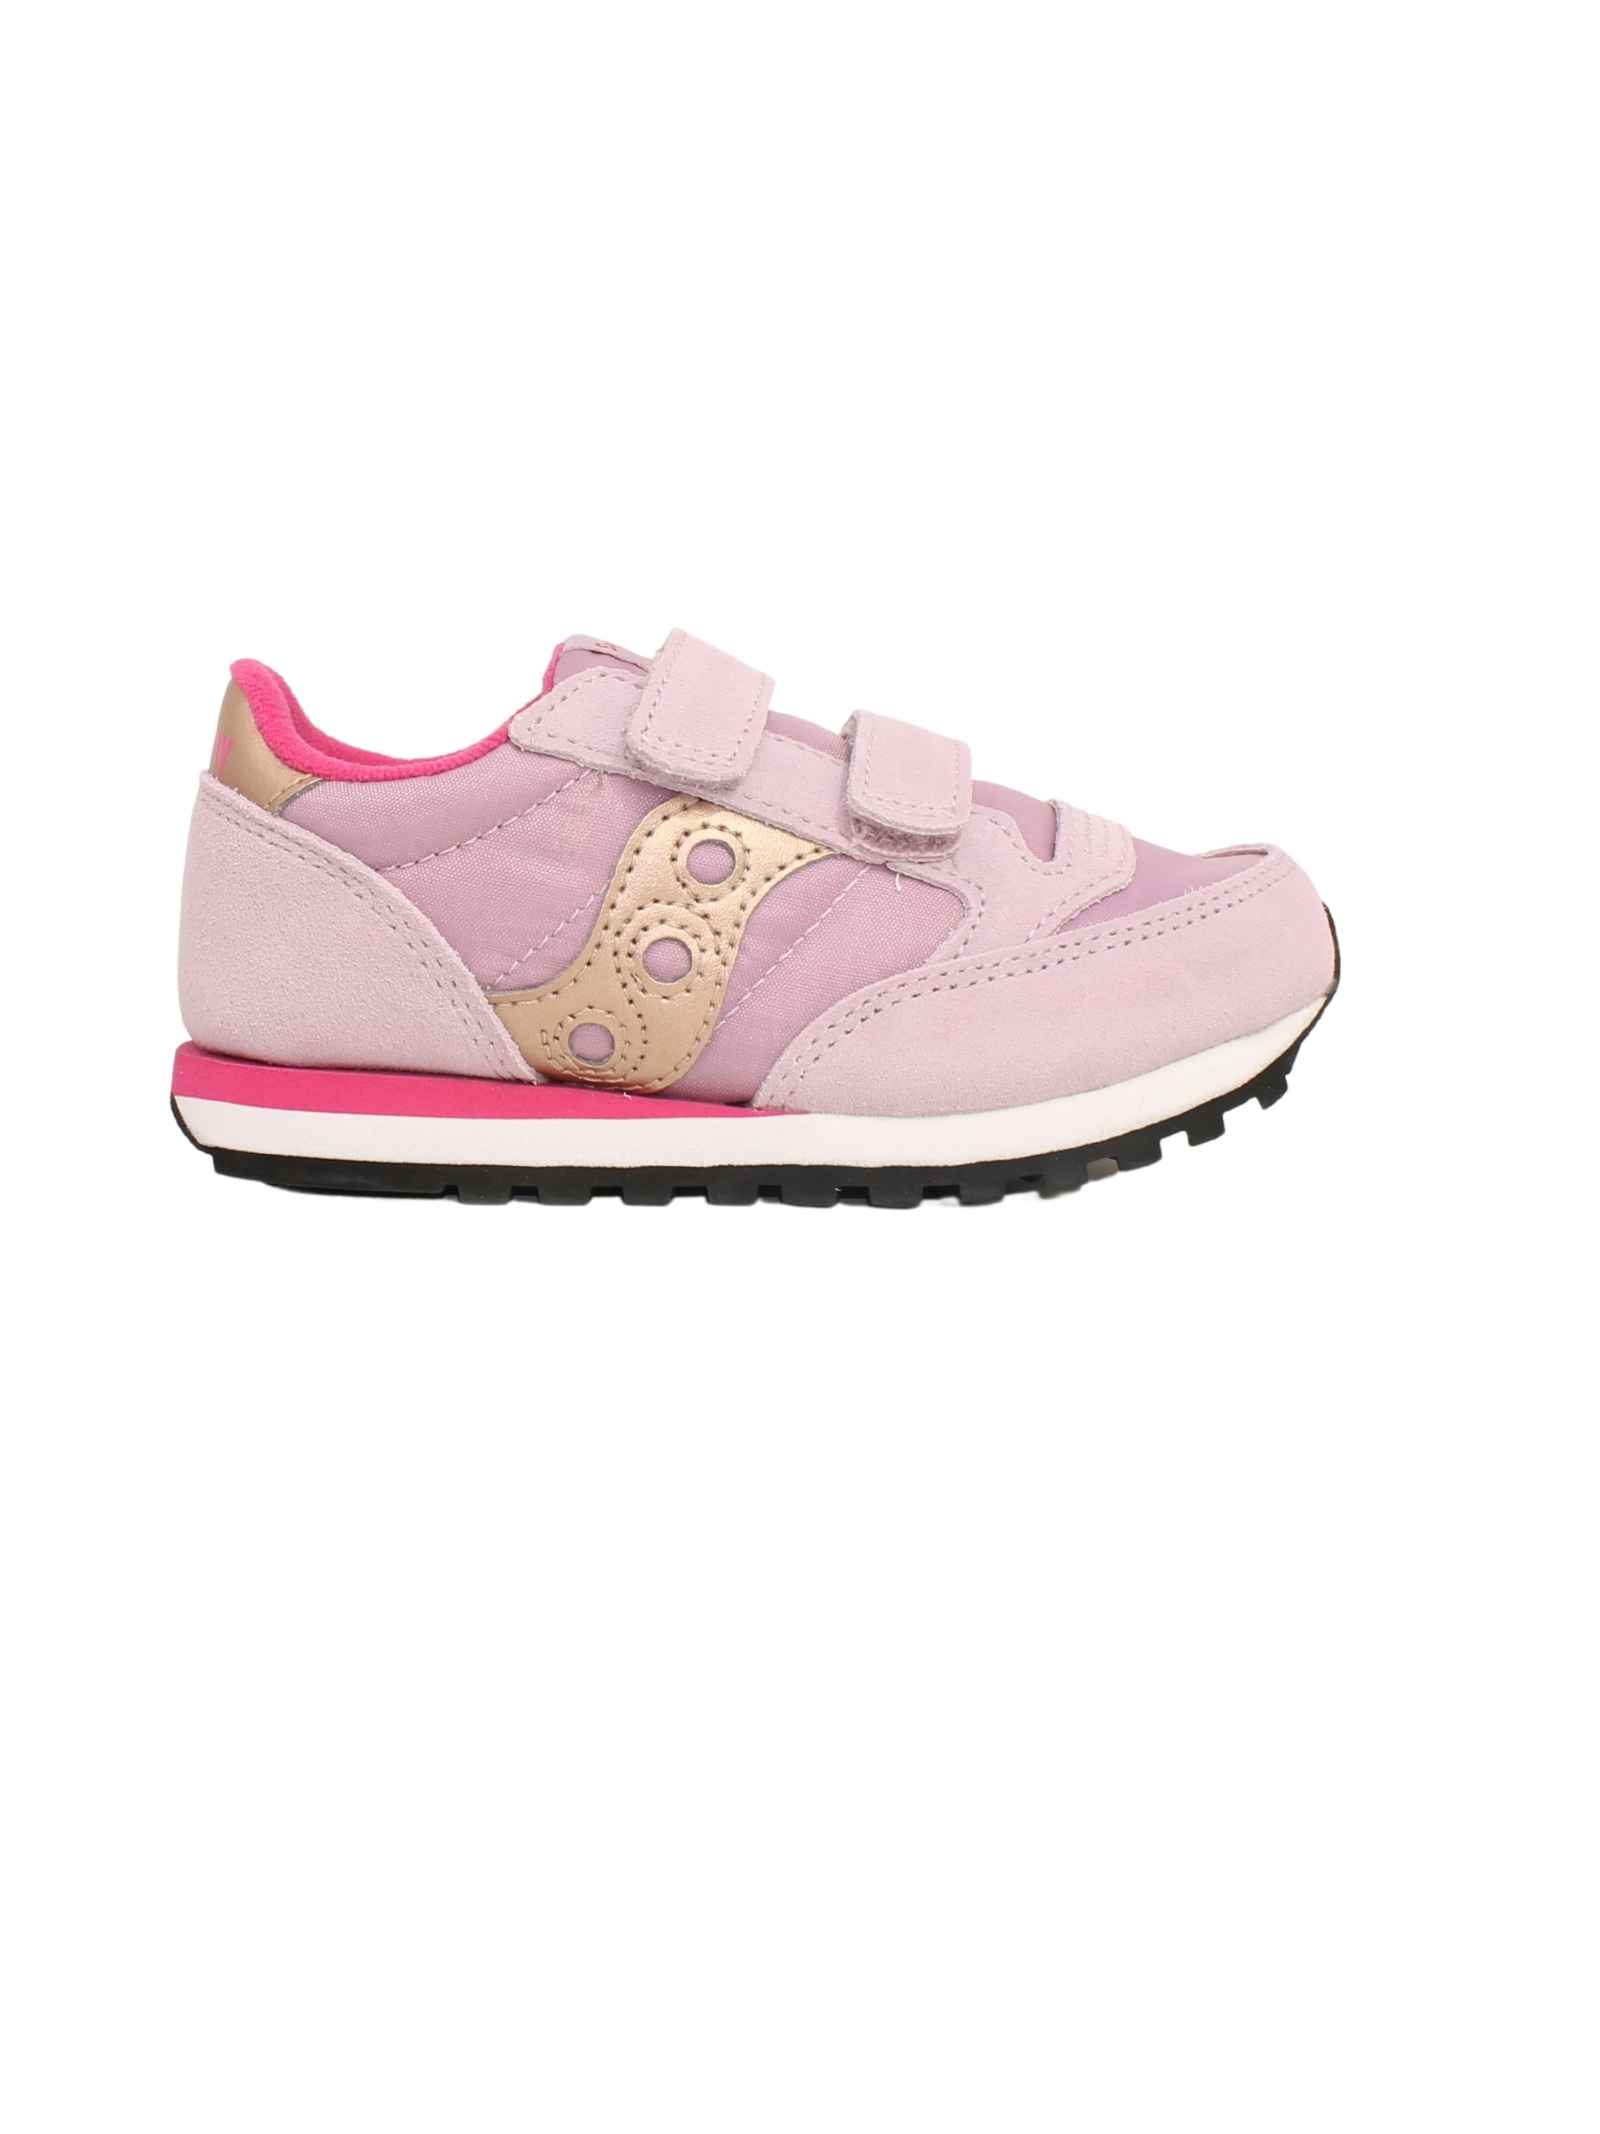 Sneakers Jazz Double Bambina SAUCONY KIDS | Sneakers | SK165148MAUVE/PINK